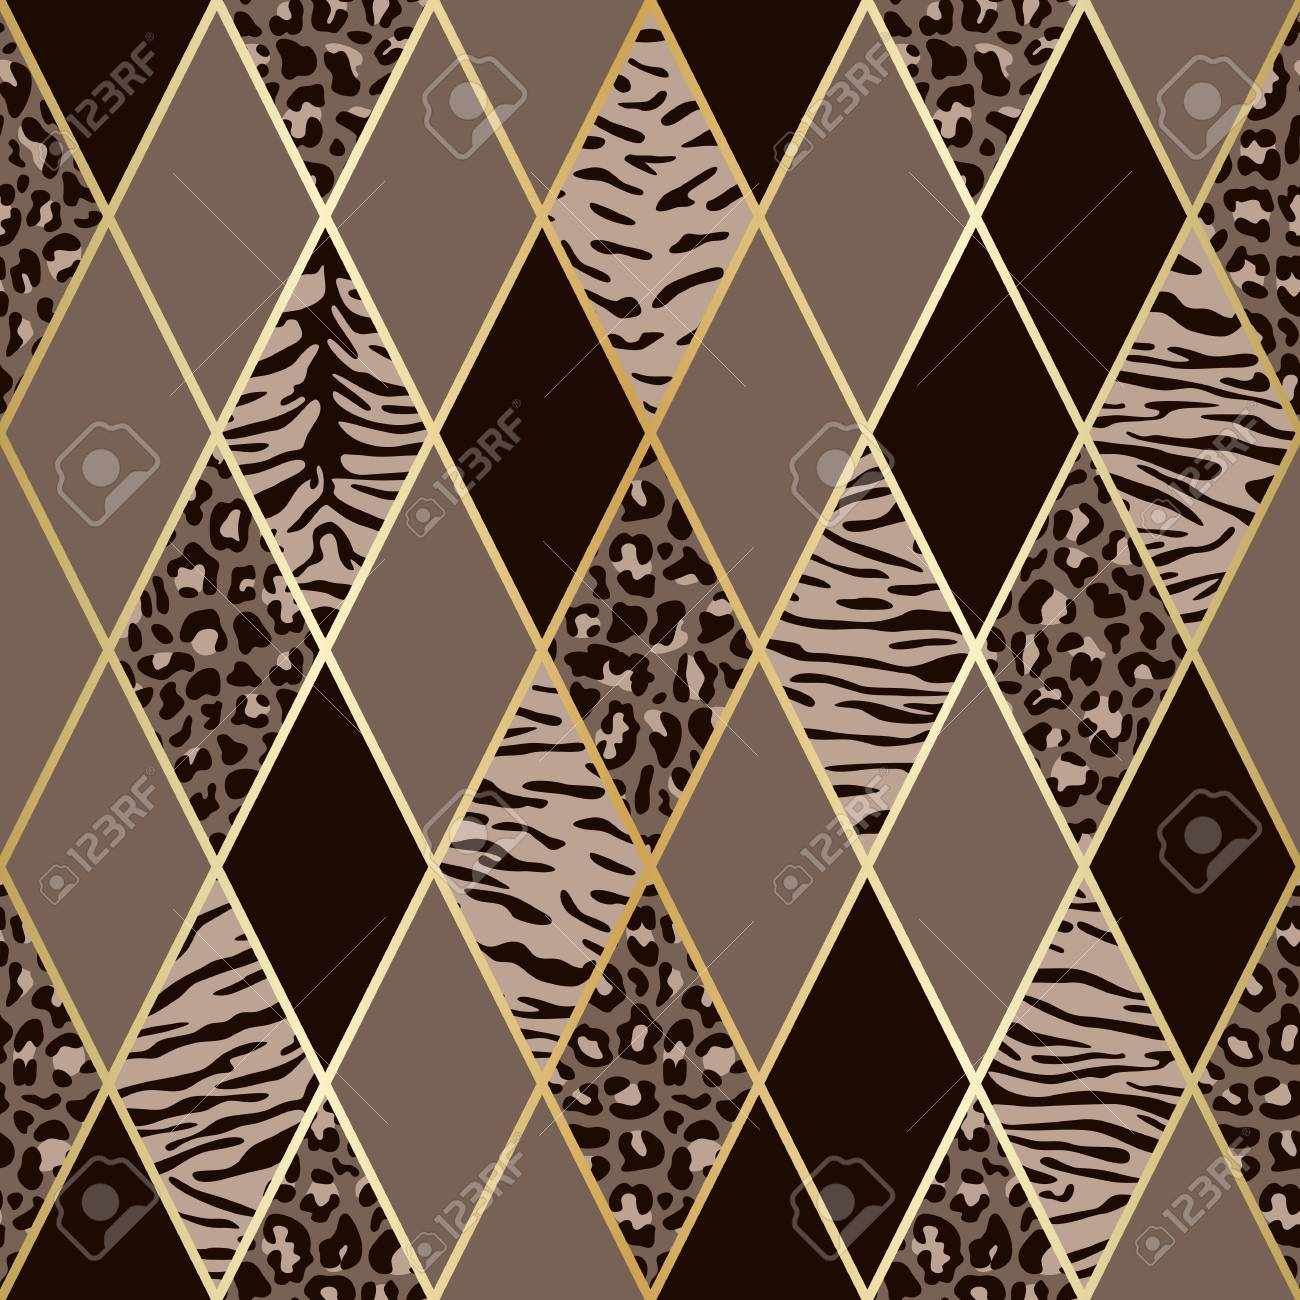 Vector leopard and tiger seamless pattern with golden geometric diagonal lines. Brown and beige rhombus and animal surface, modern luxurious background, luxury wallpaper, textile print. - 117507766